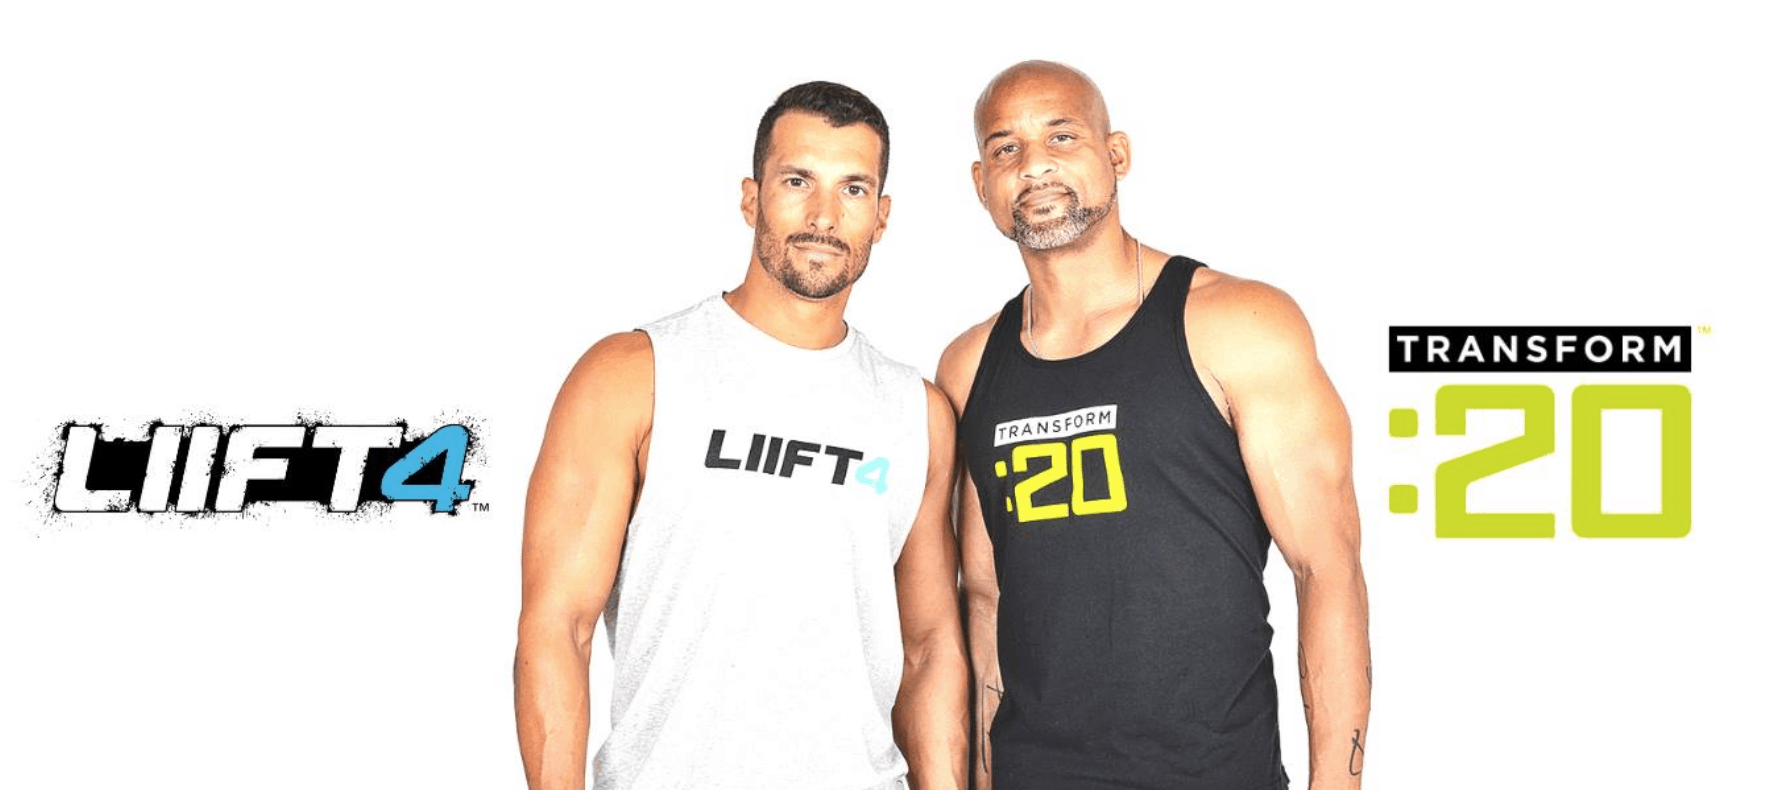 Transform 20 Liift4 Hybrid Calendar | 6 Week Schedule regarding Shaun T Calendar